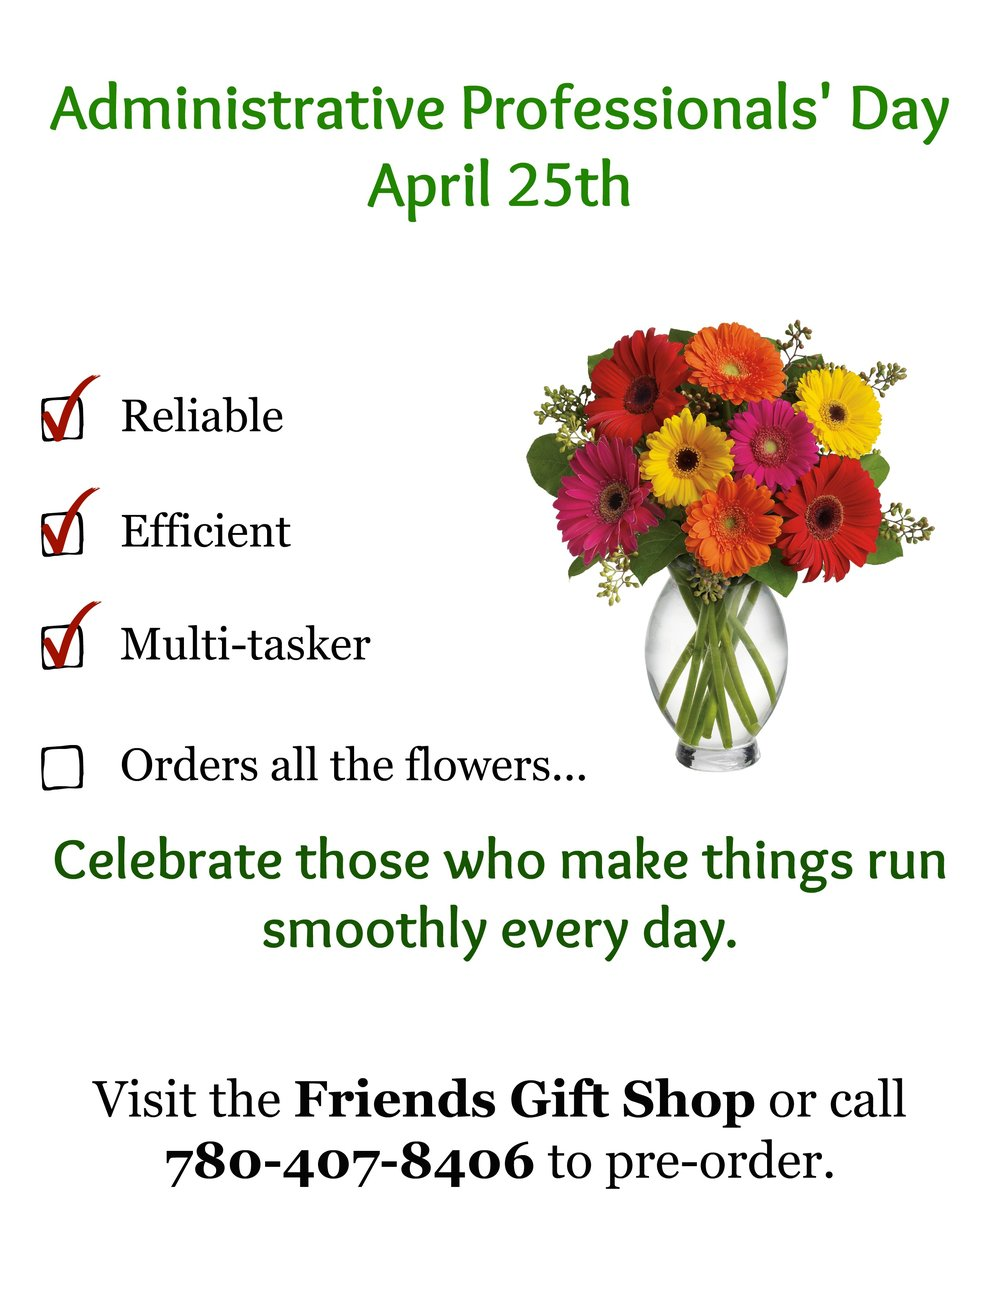 administrative professionals day april 25th 2018 friends of